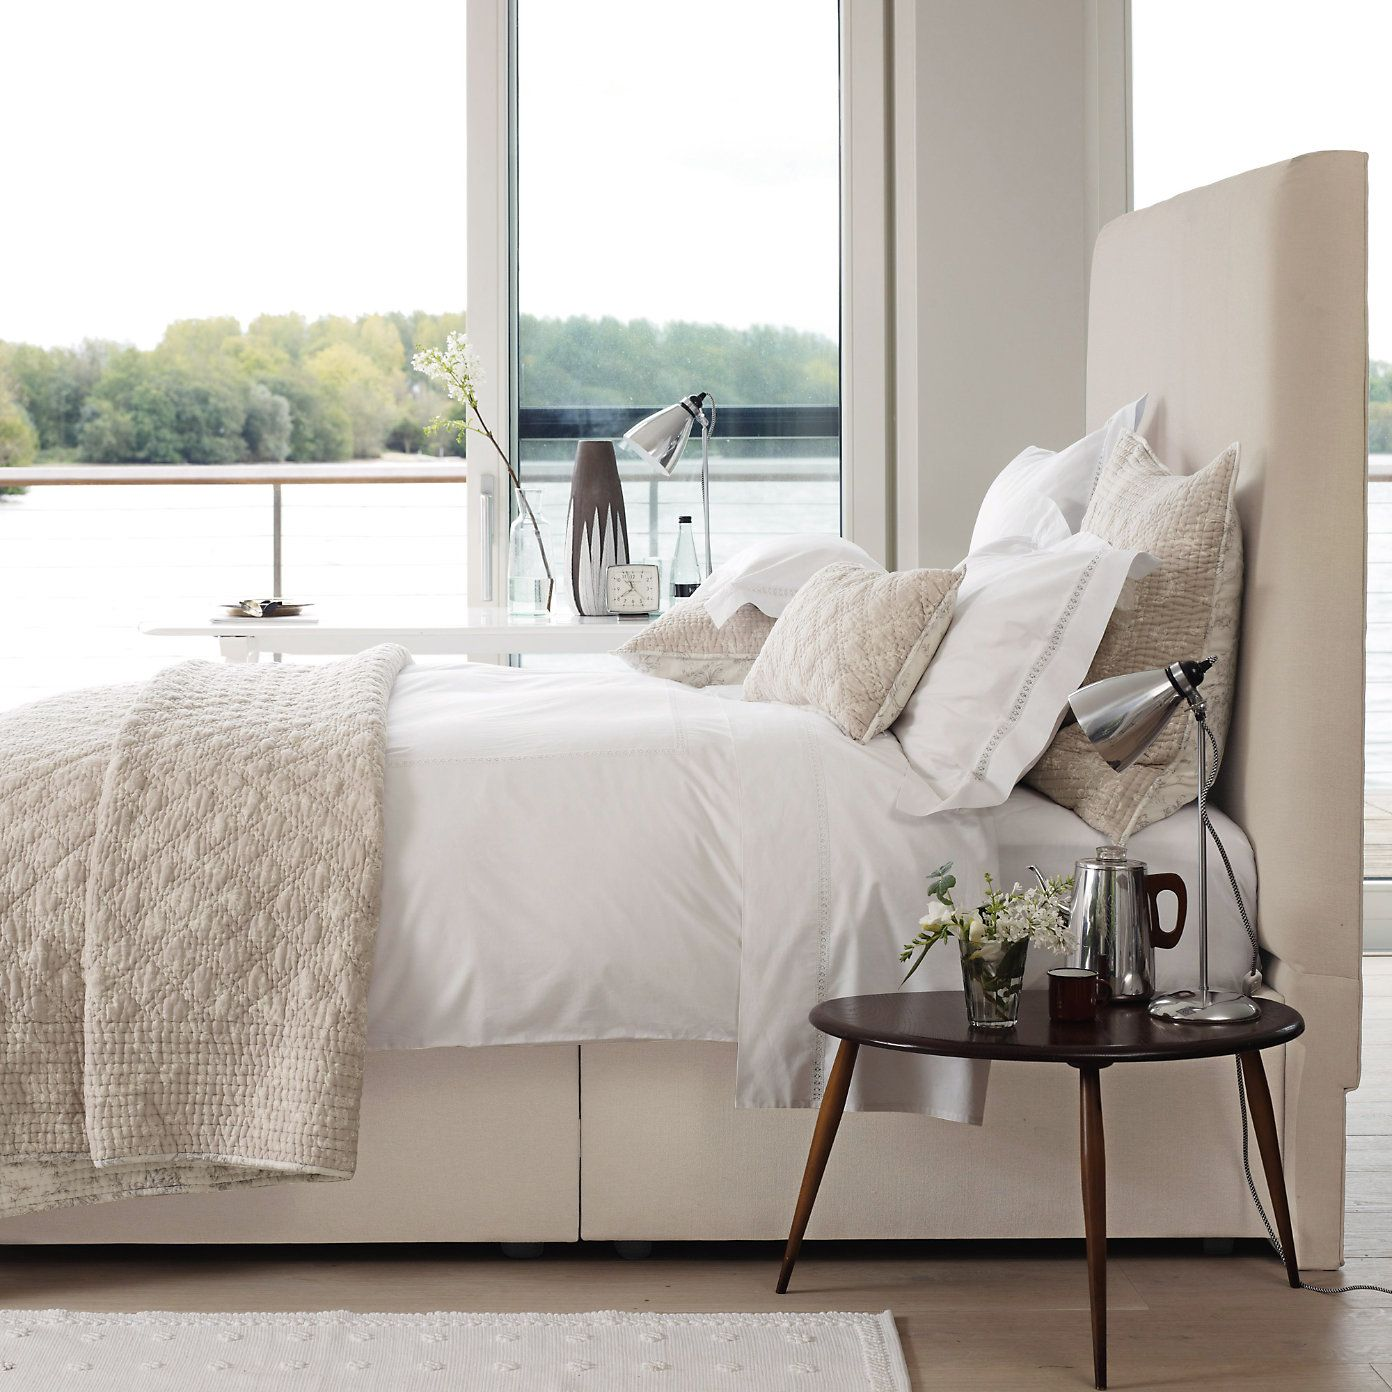 Bedroom Design Apps High Fabric Headboard Cream Neutral Bedroom  Home Sweet Home